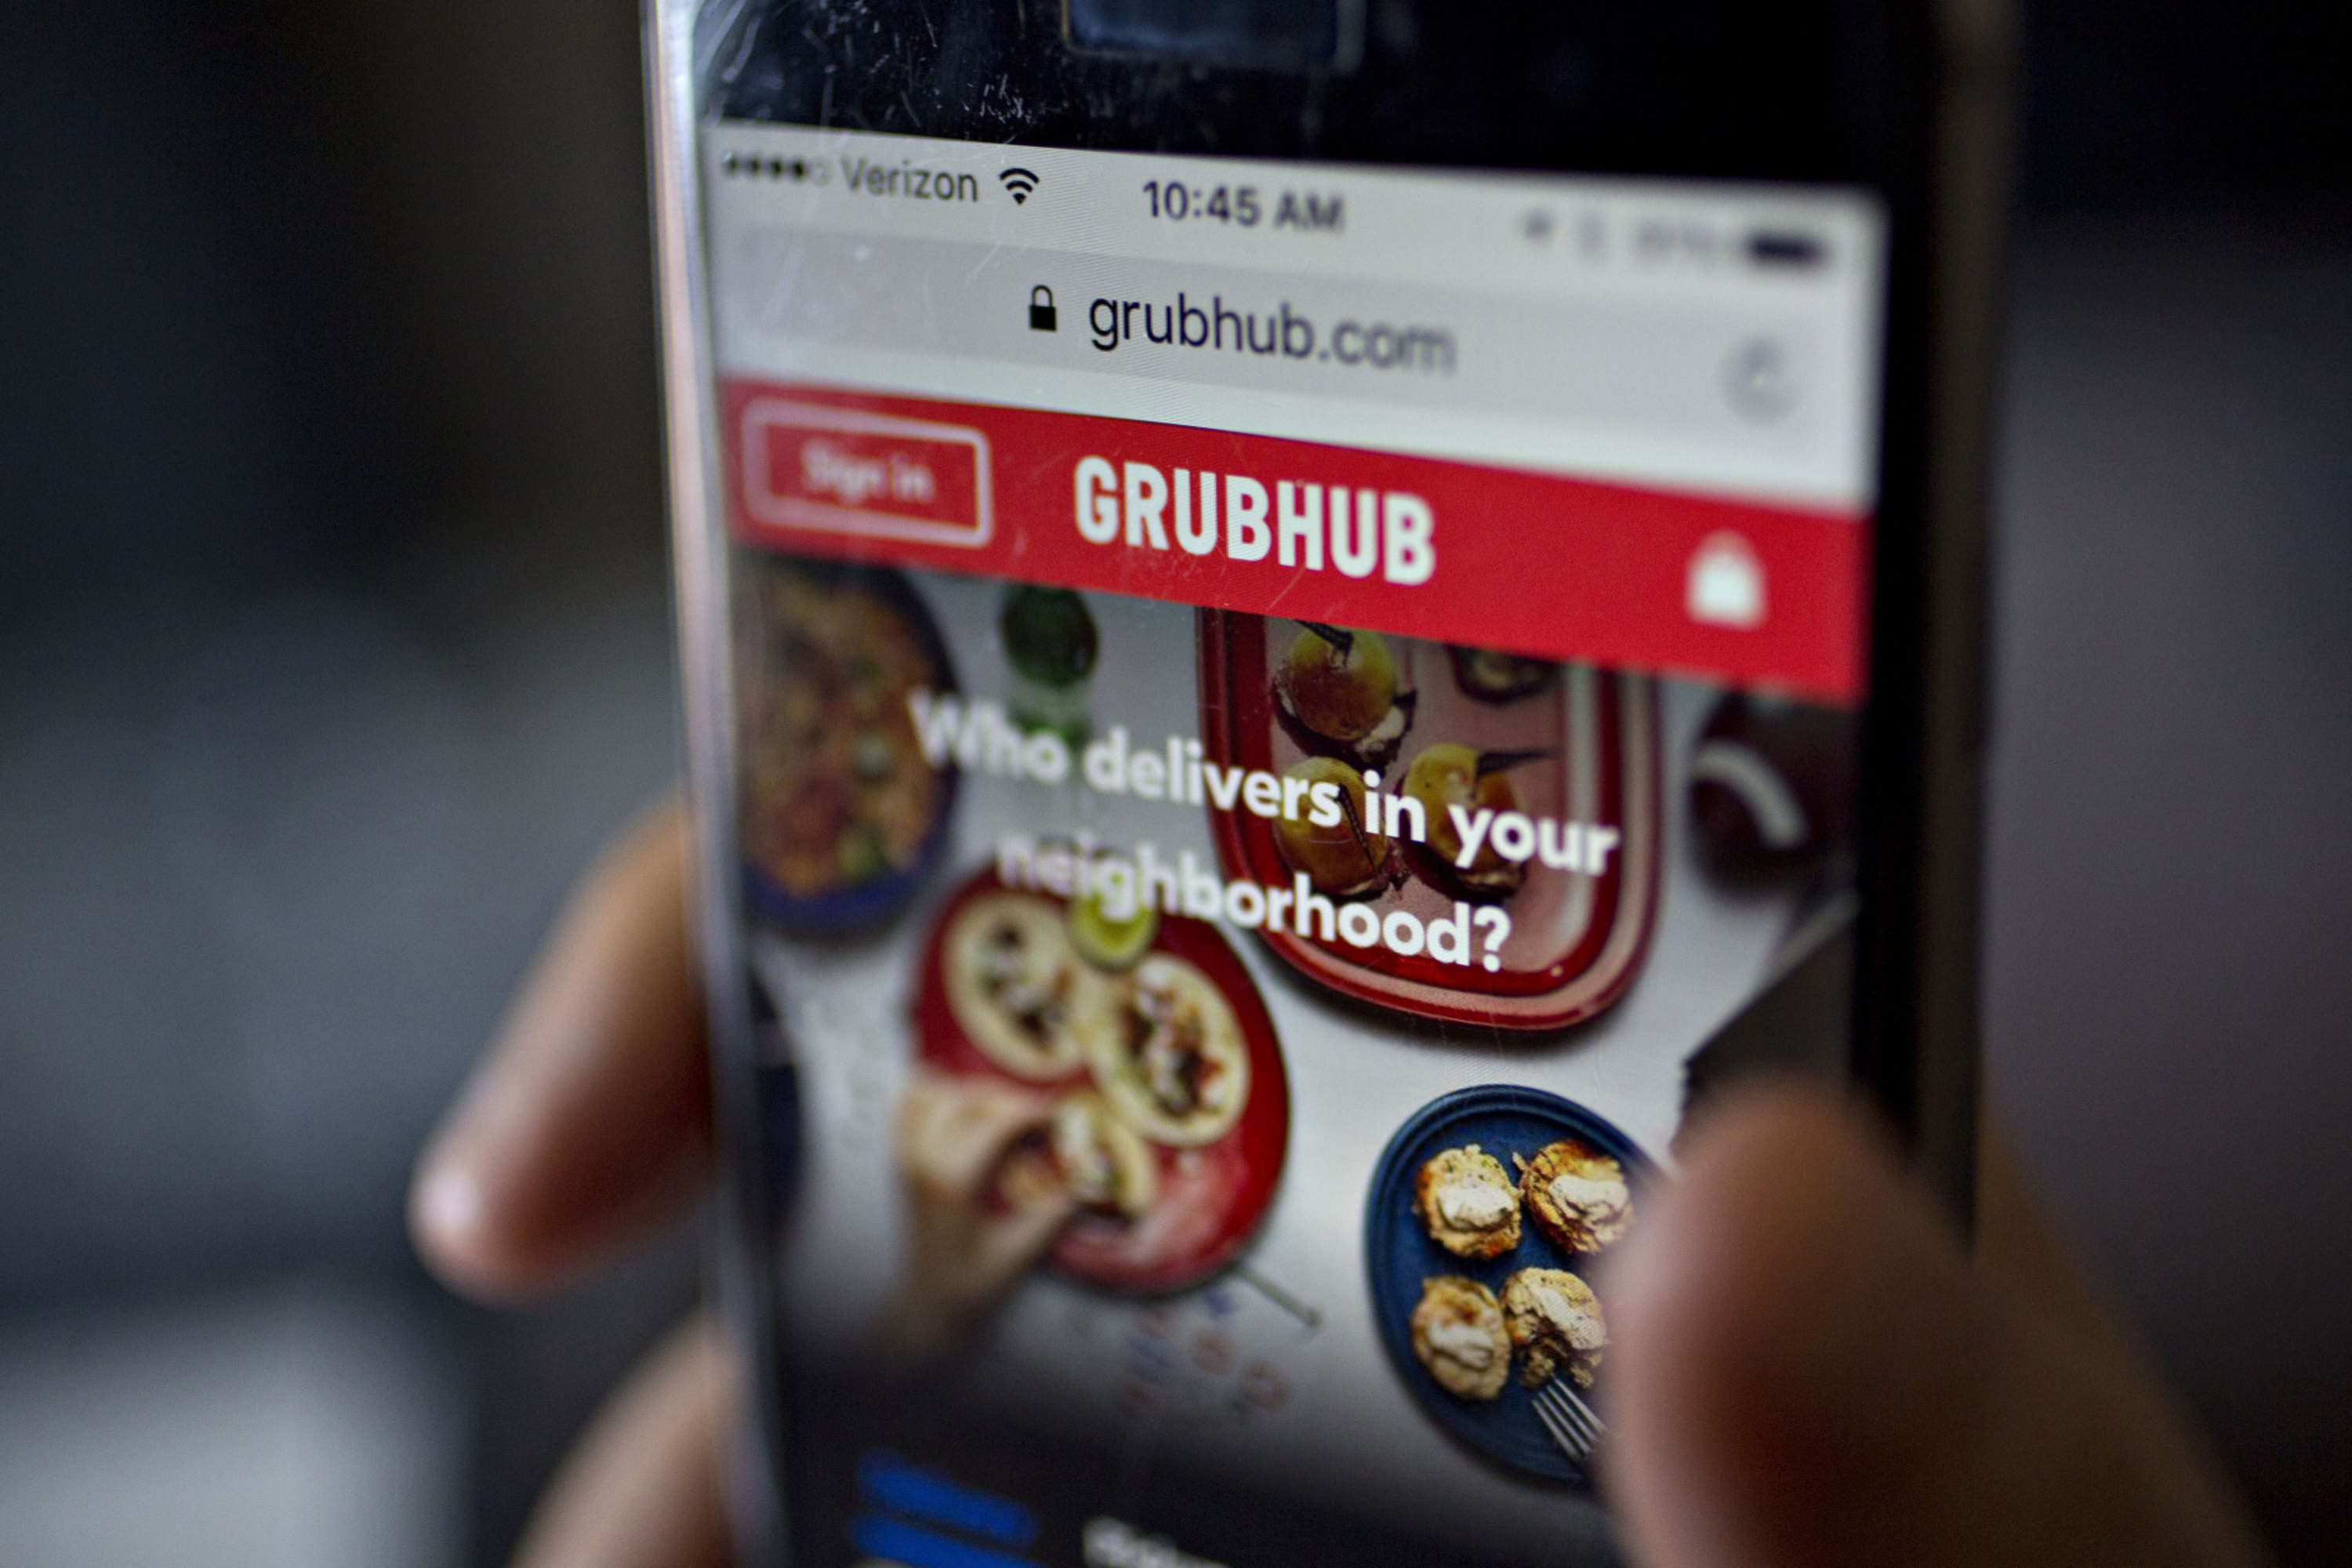 Competitors, lagging sales take bite out of Grubhub